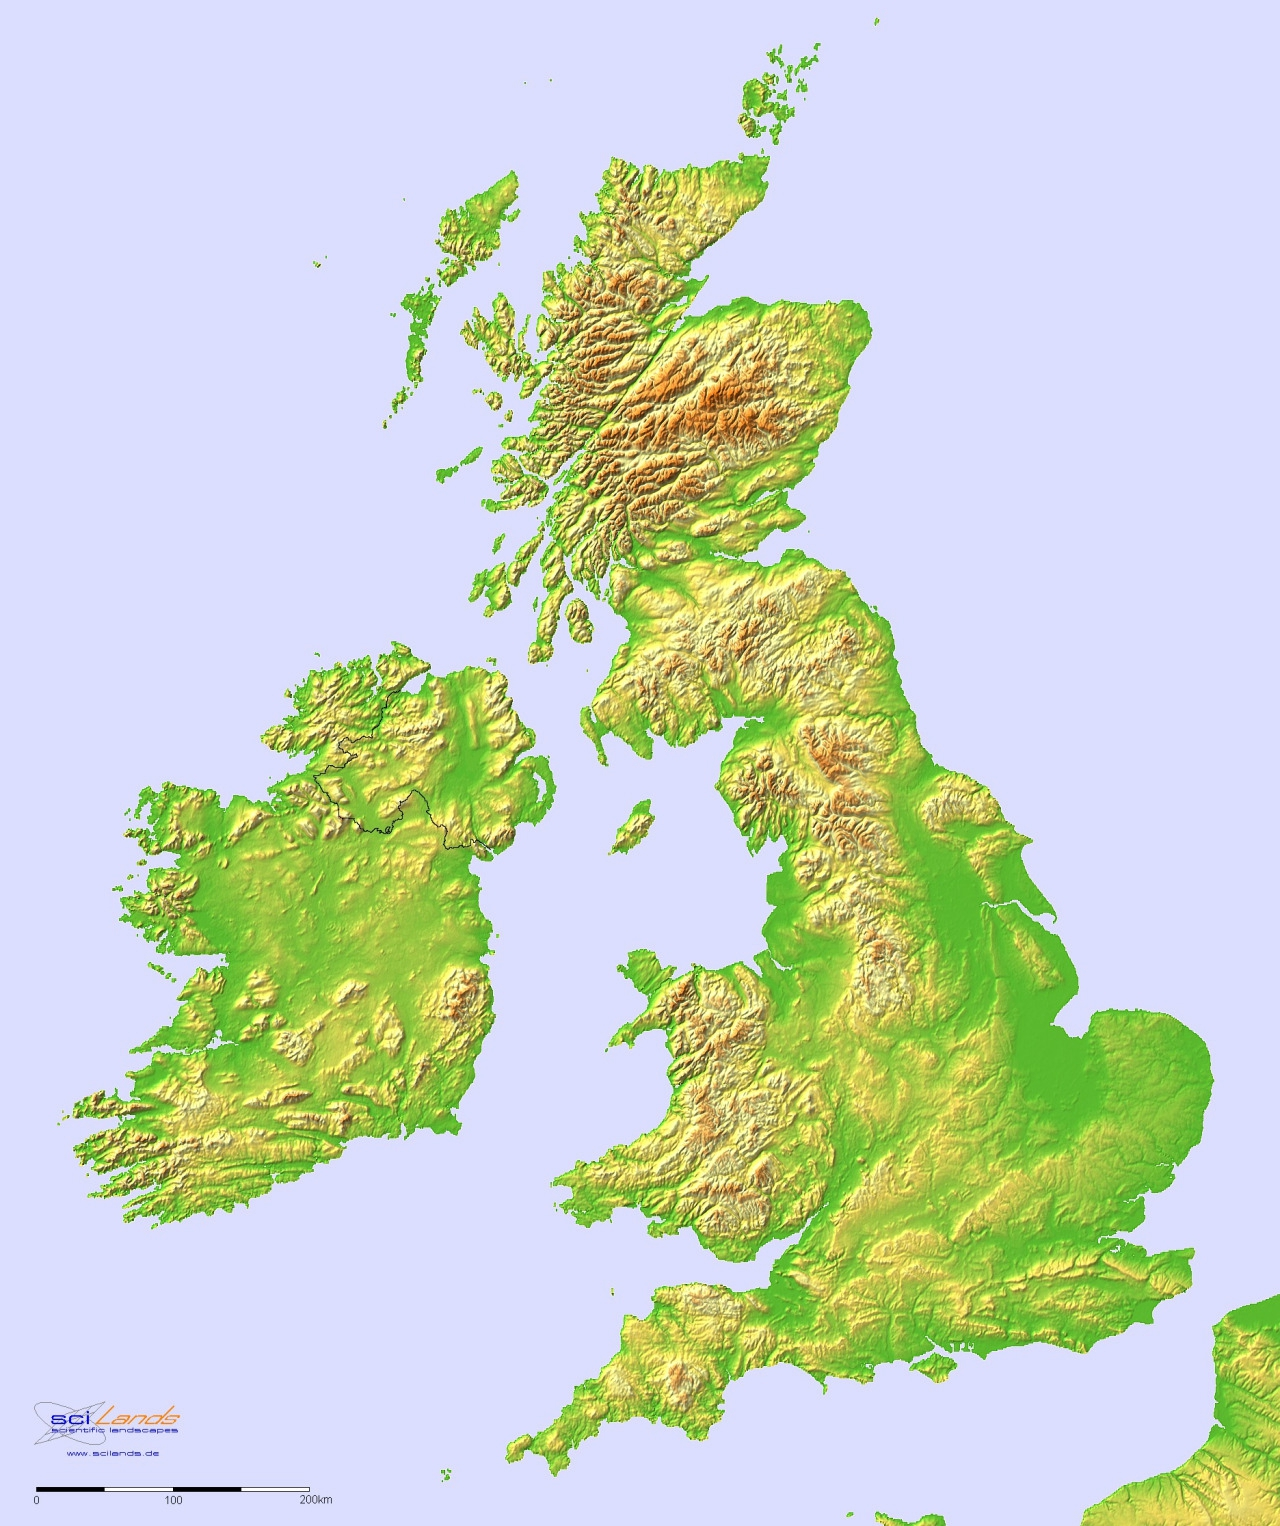 angleterre-Topographic hillshade map of Great Britain and Ireland